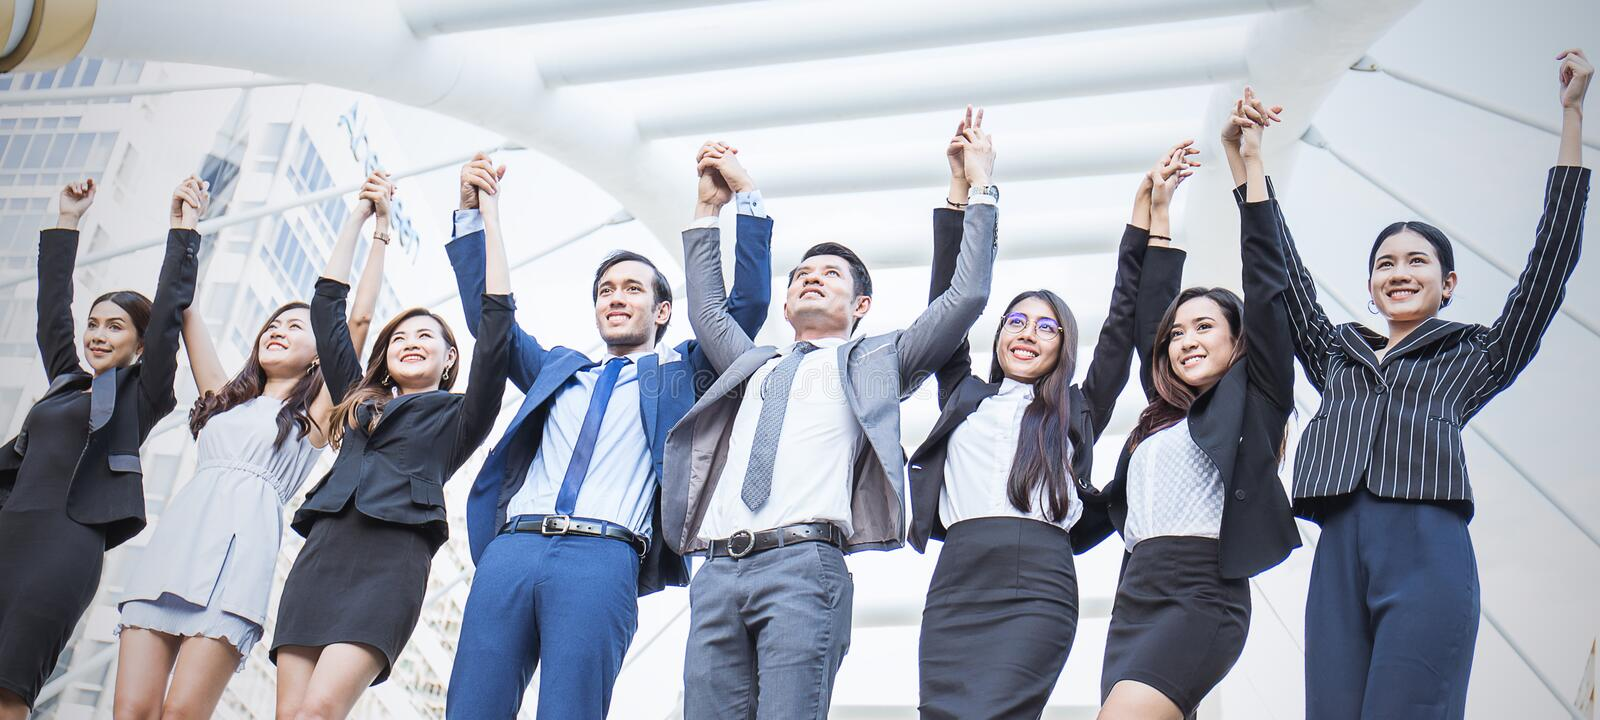 Portrait of confident business people group standing in row stock photo